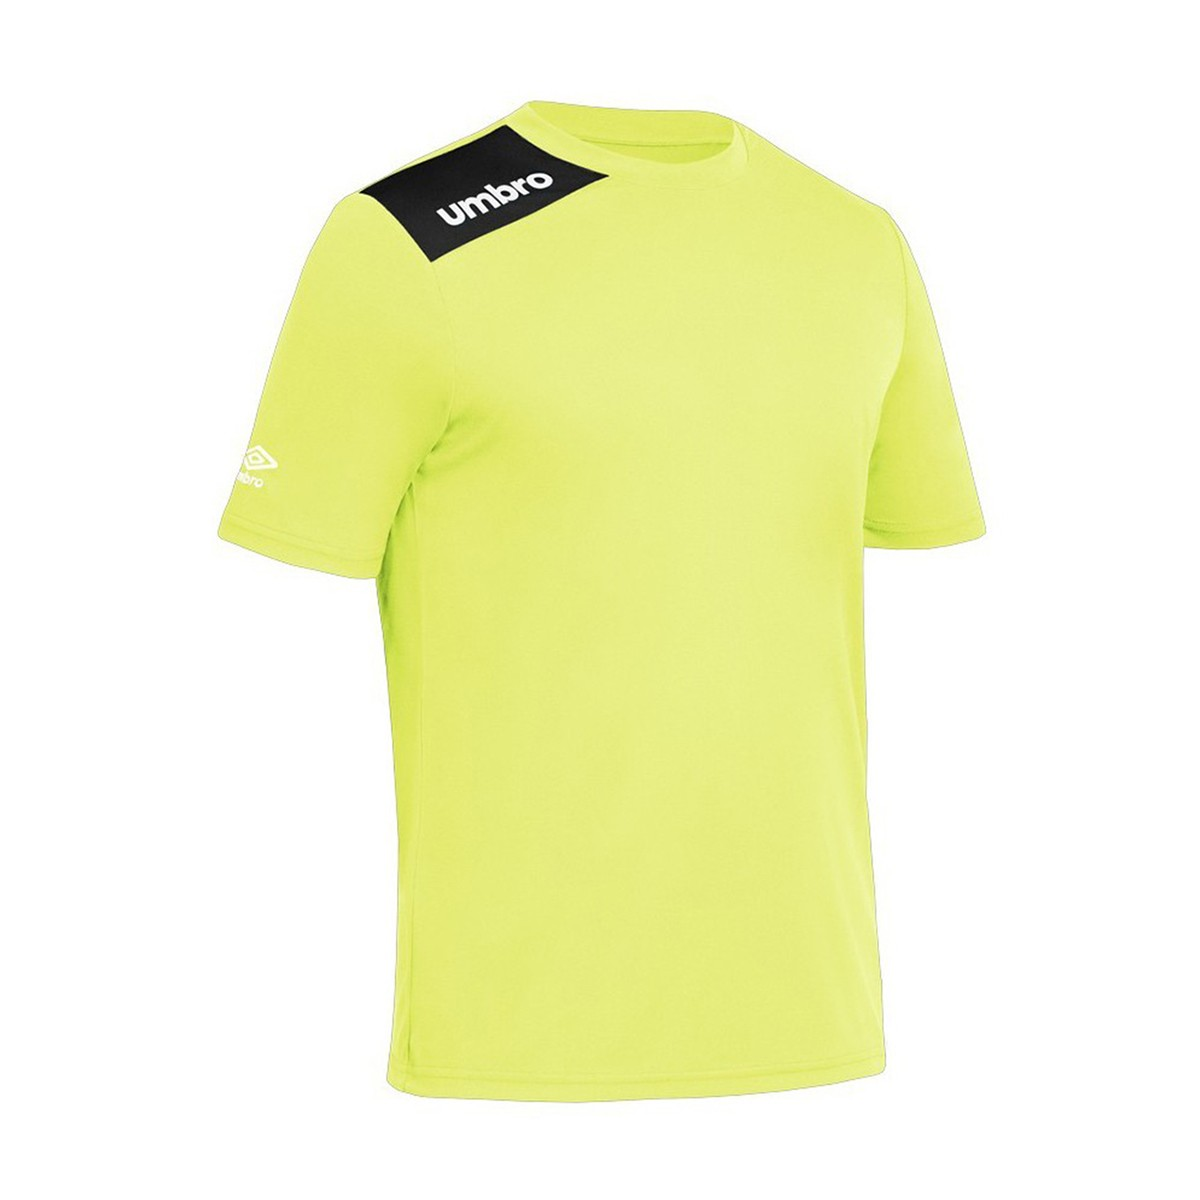 afd1985bc Jersey Umbro Fight m c Fluorescent Yellow -Black - Football store ...